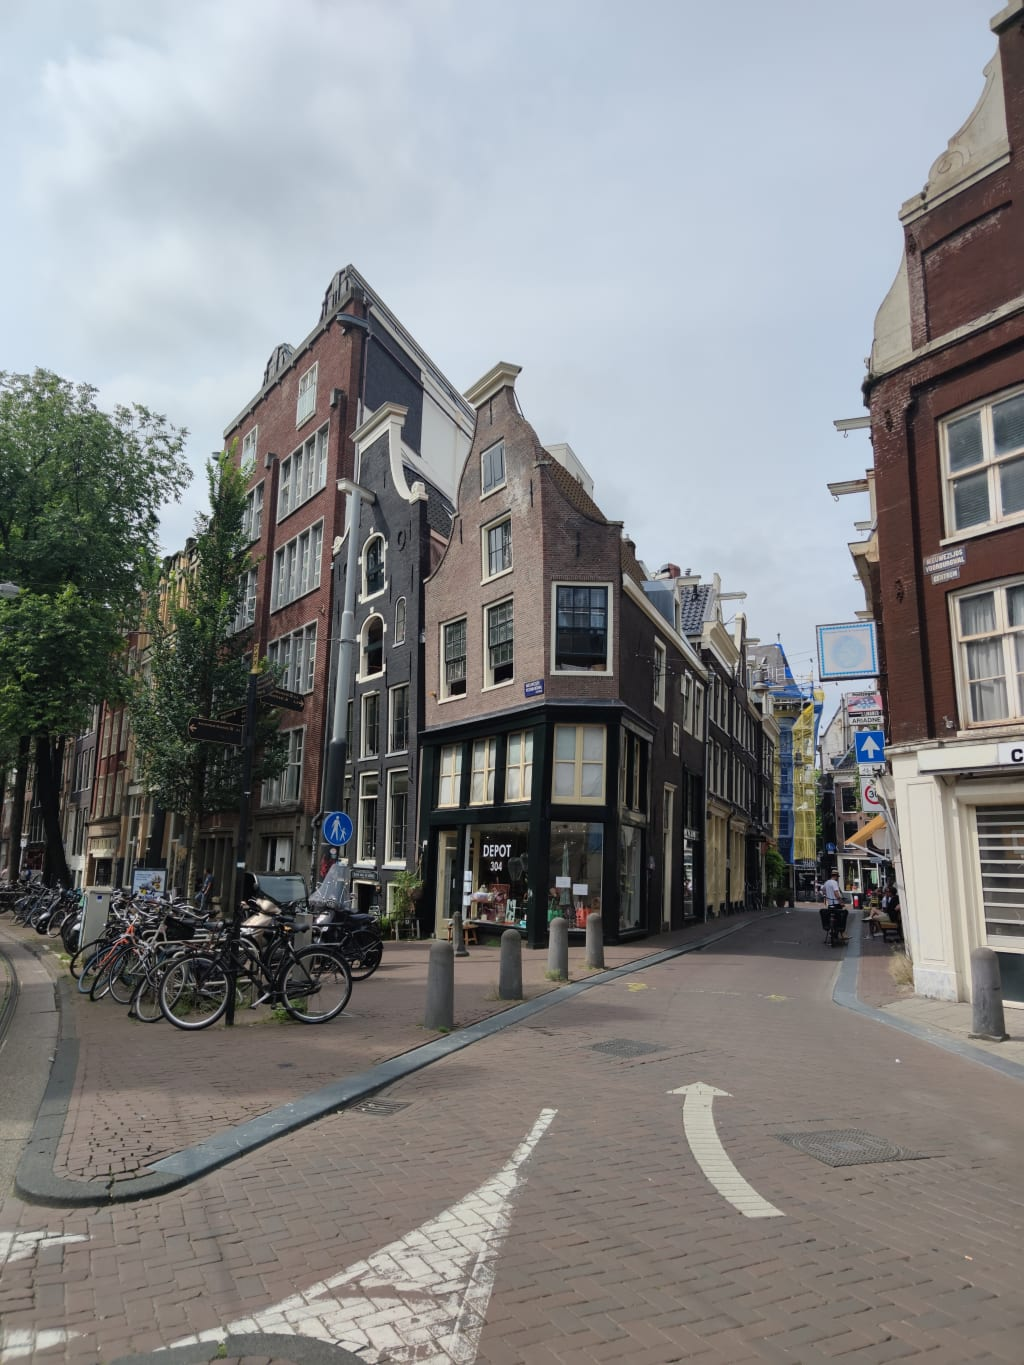 Tips for travel to Amsterdam